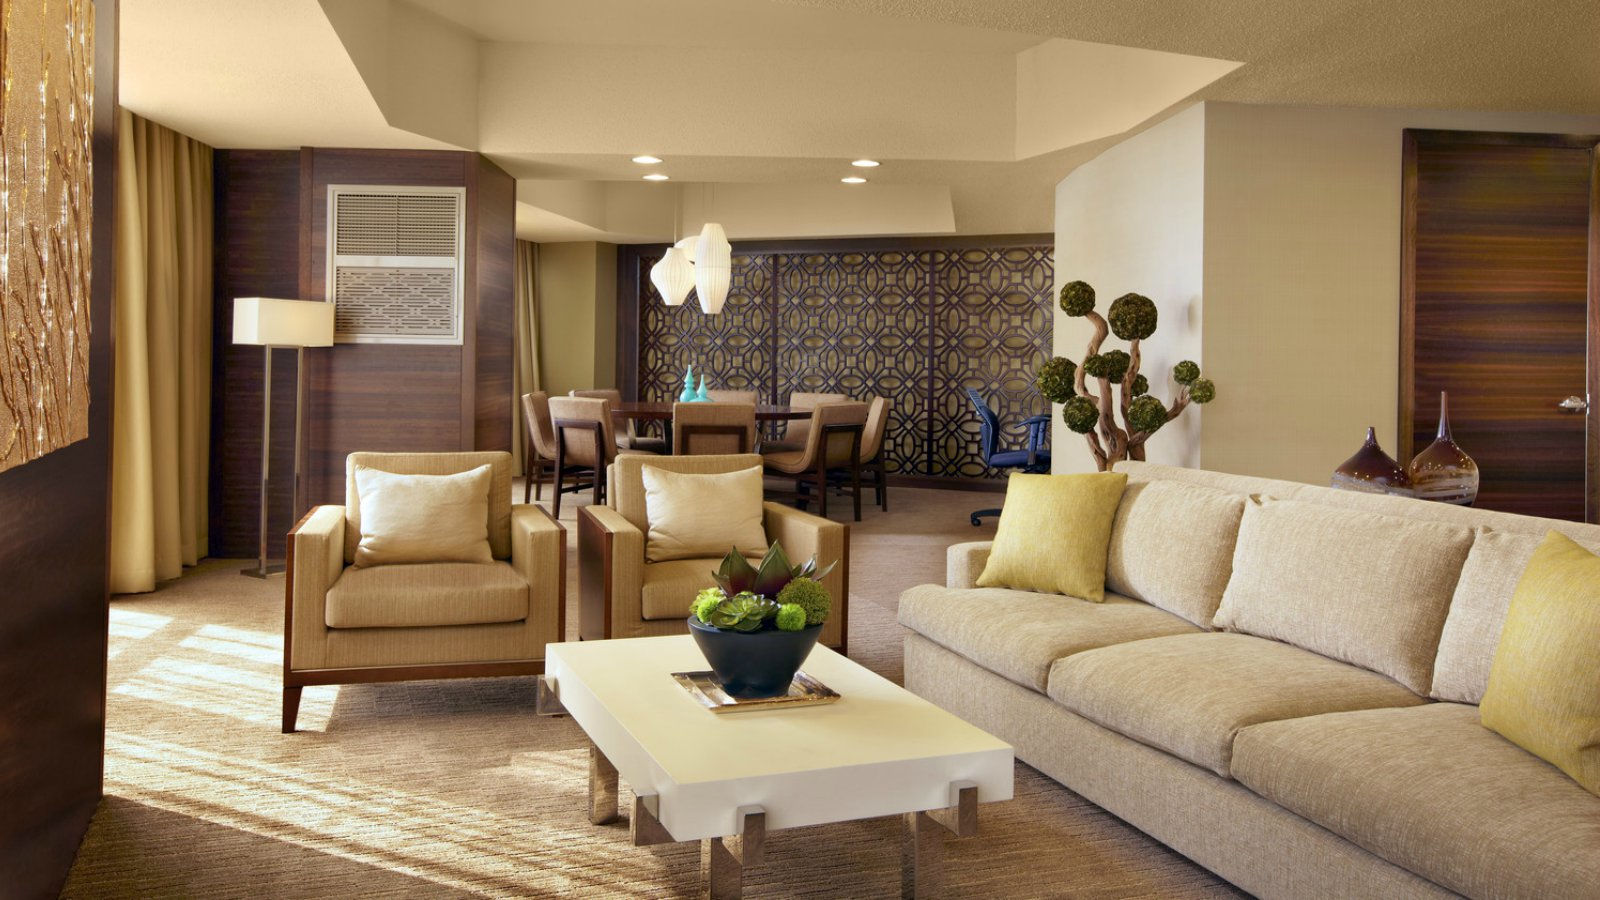 Downton Los Angeles Accommodation - Luxury Suites